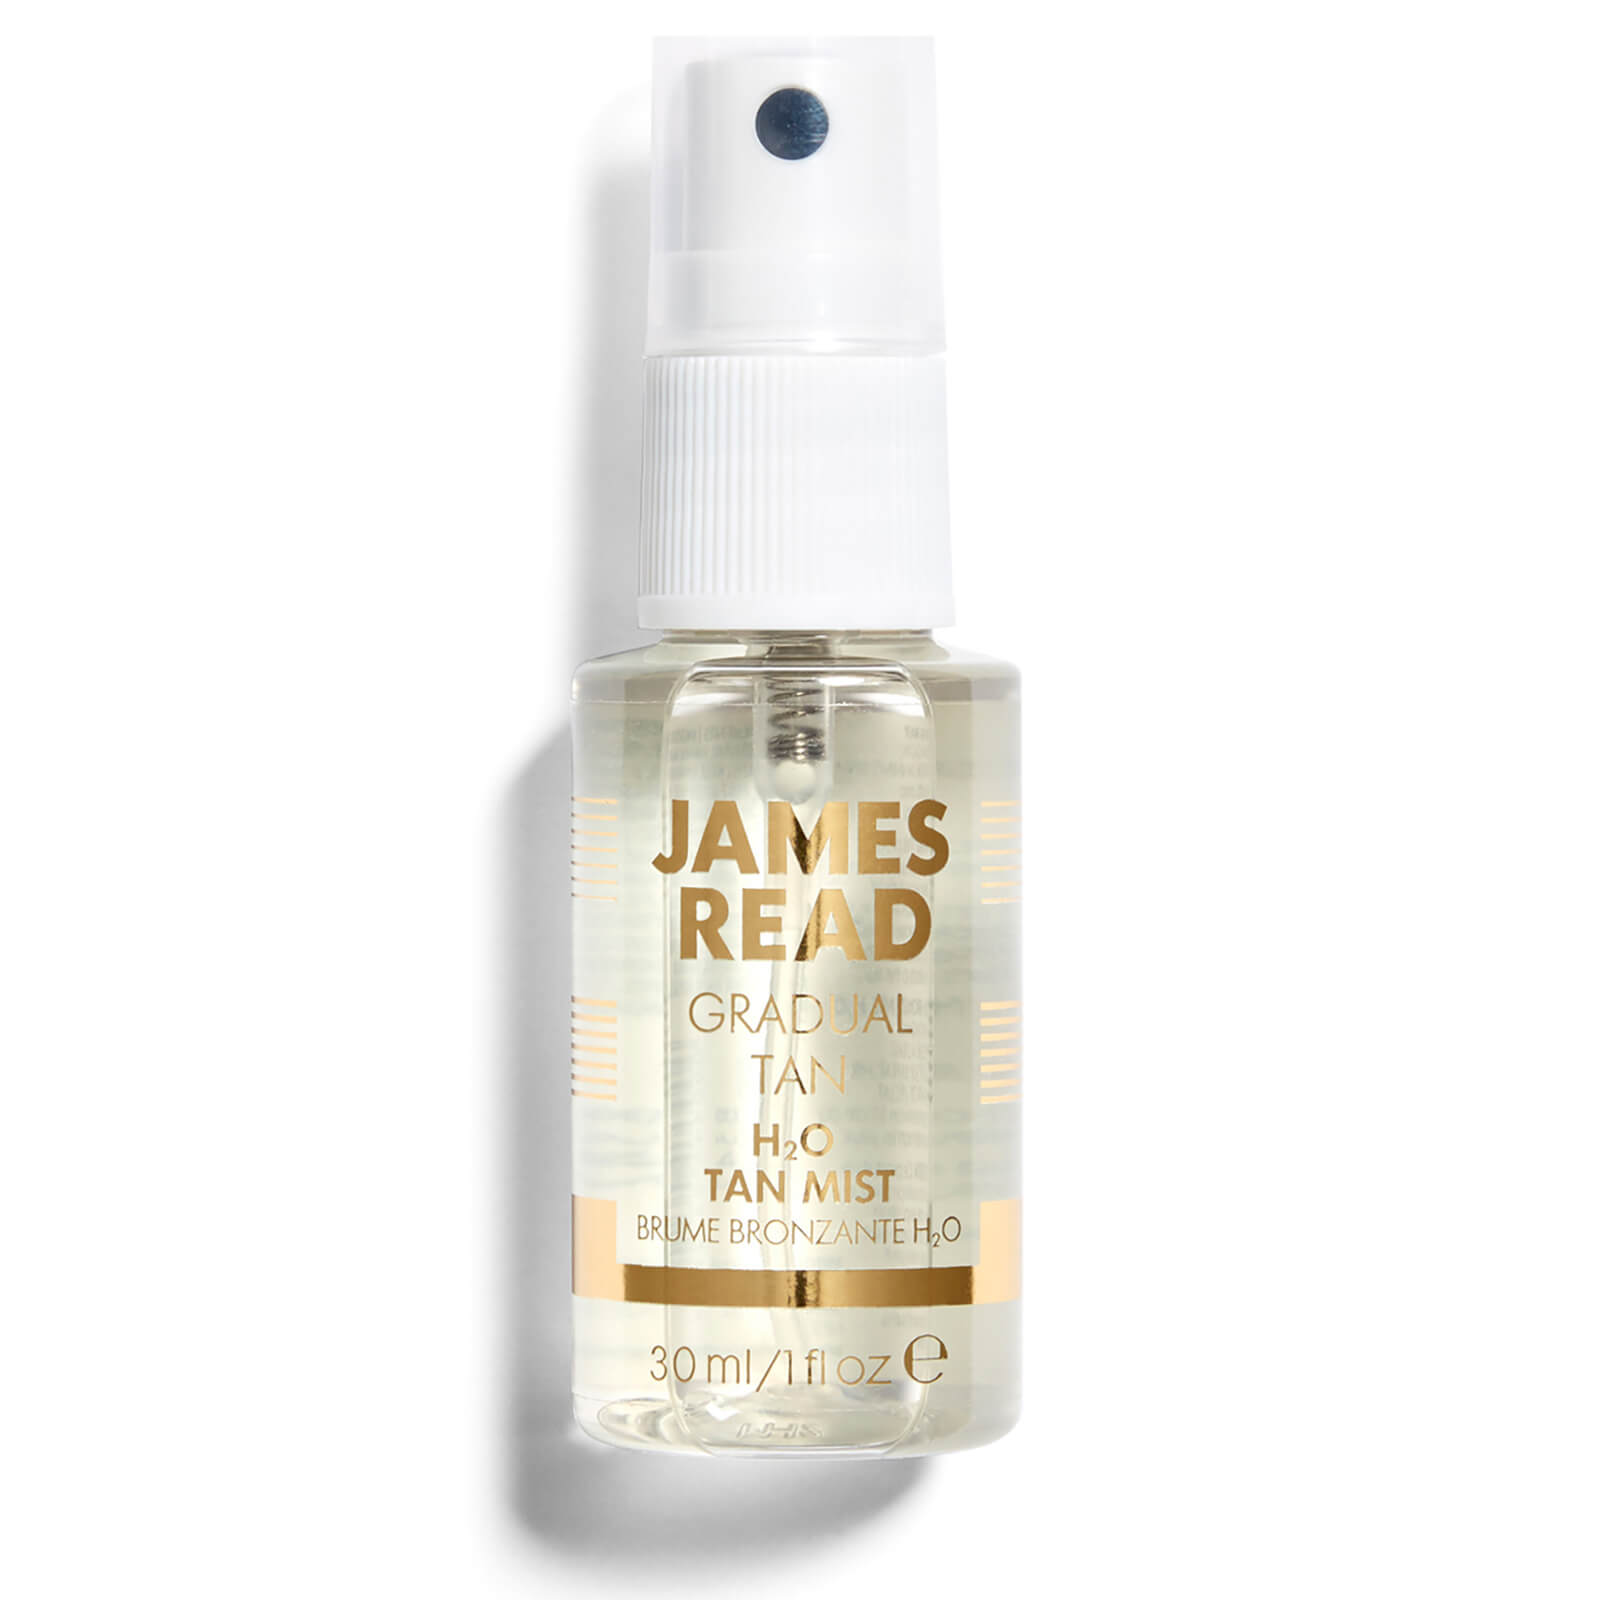 1cd77328cde0b James Read H20 Tan Mist Face 30ml (Beauty Box). Product Details